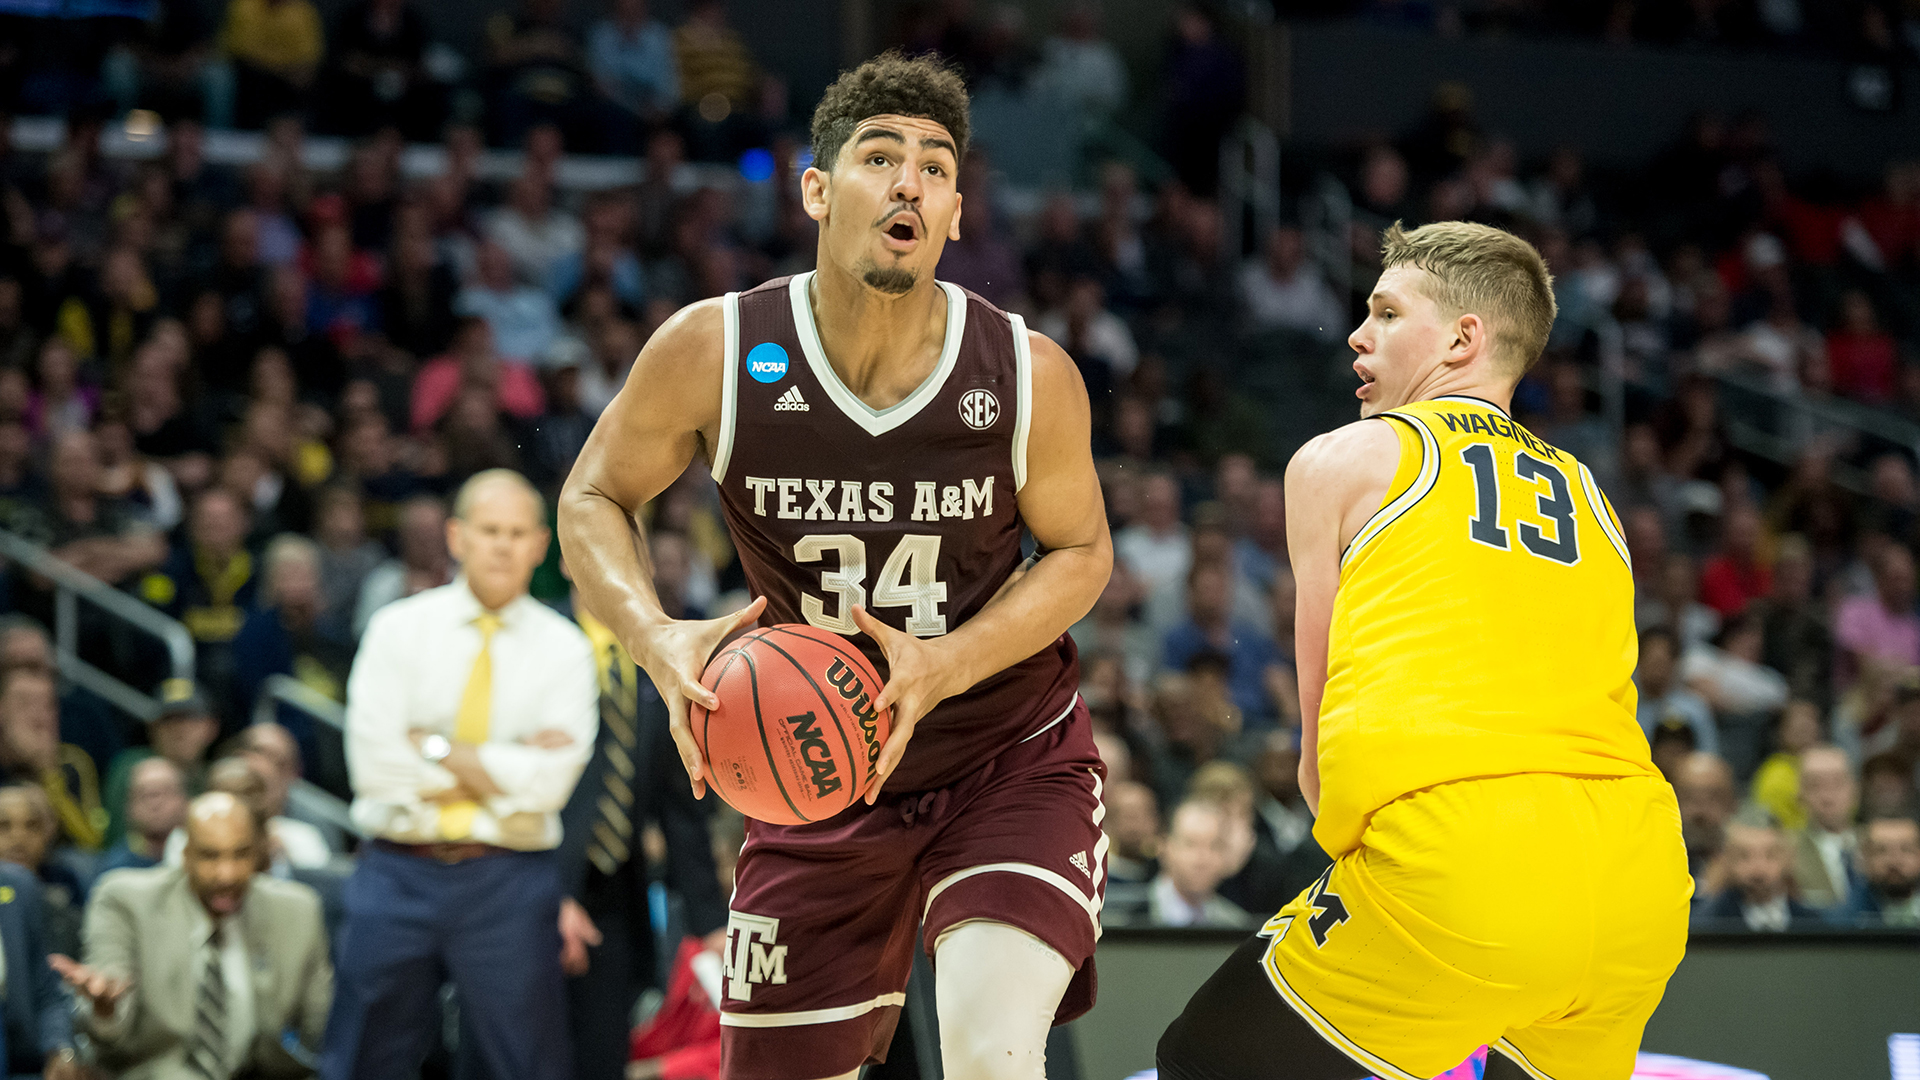 men's basketball season ends in ncaa sweet 16 - texas a&m university